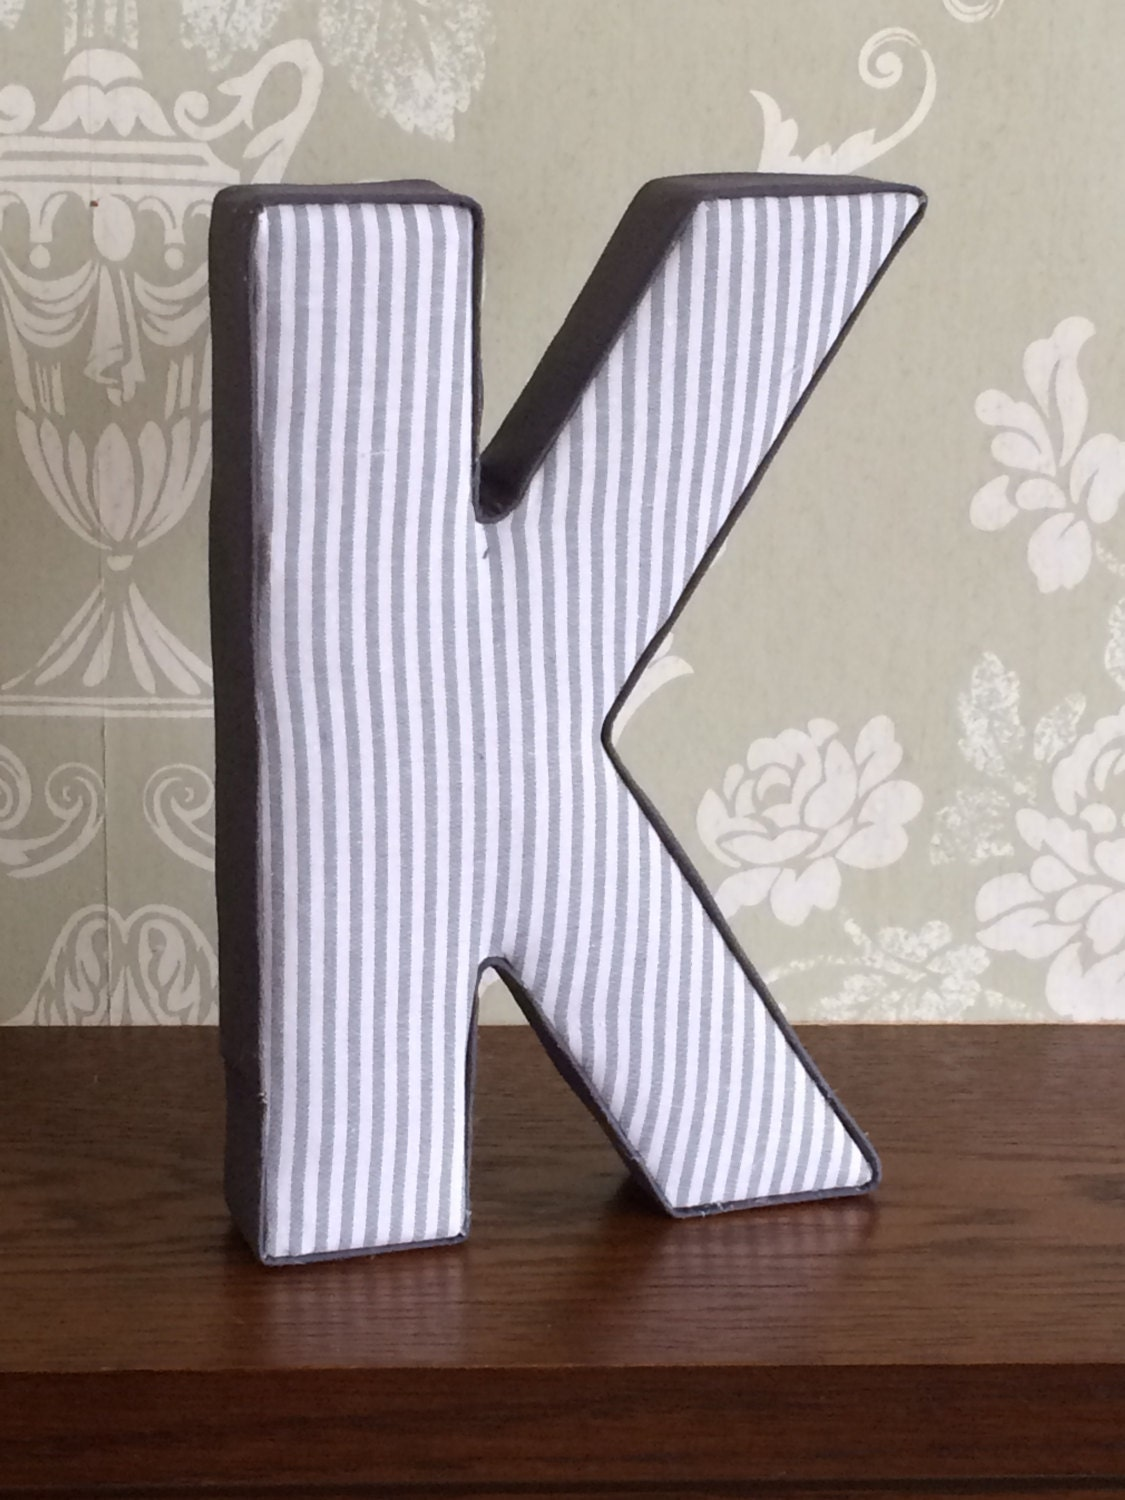 Grey unisex neutral nursery decor fabric covered letters boys girls bedroom wall decoration door plaque custom personalised gift ideas